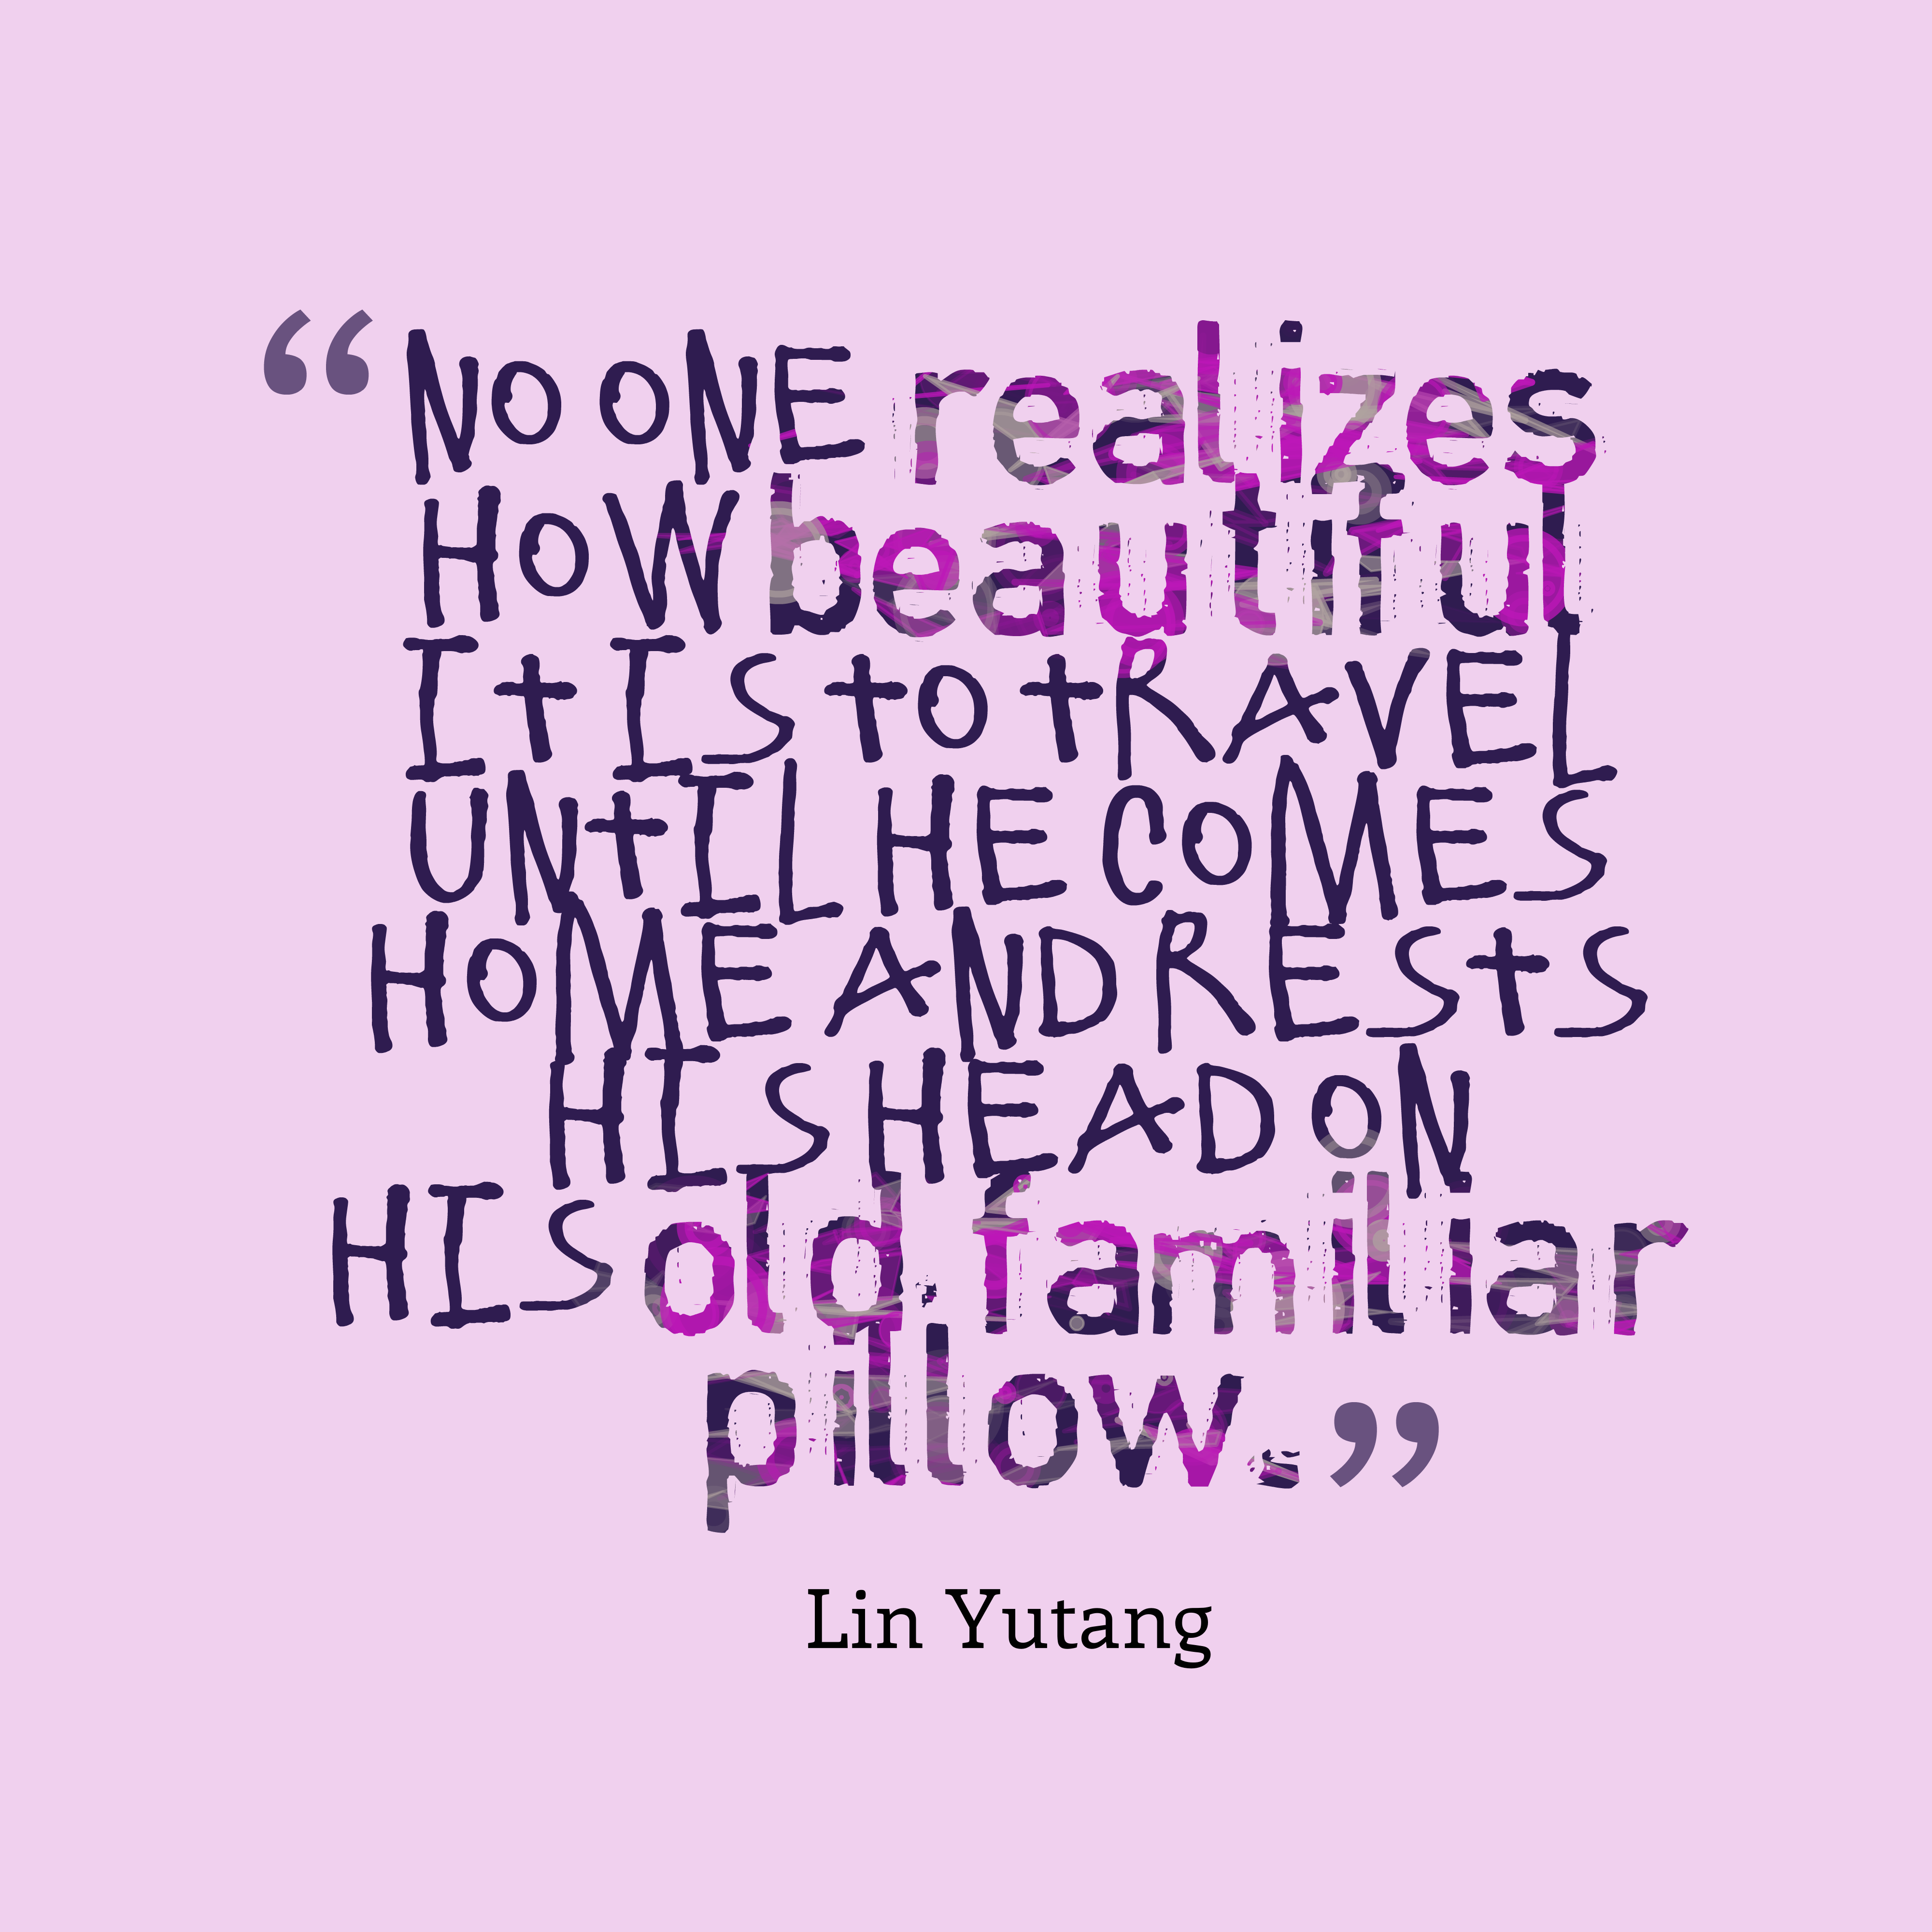 Quotes image of No one realizes how beautiful it is to travel until he comes home and rests his head on his old, familiar pillow.